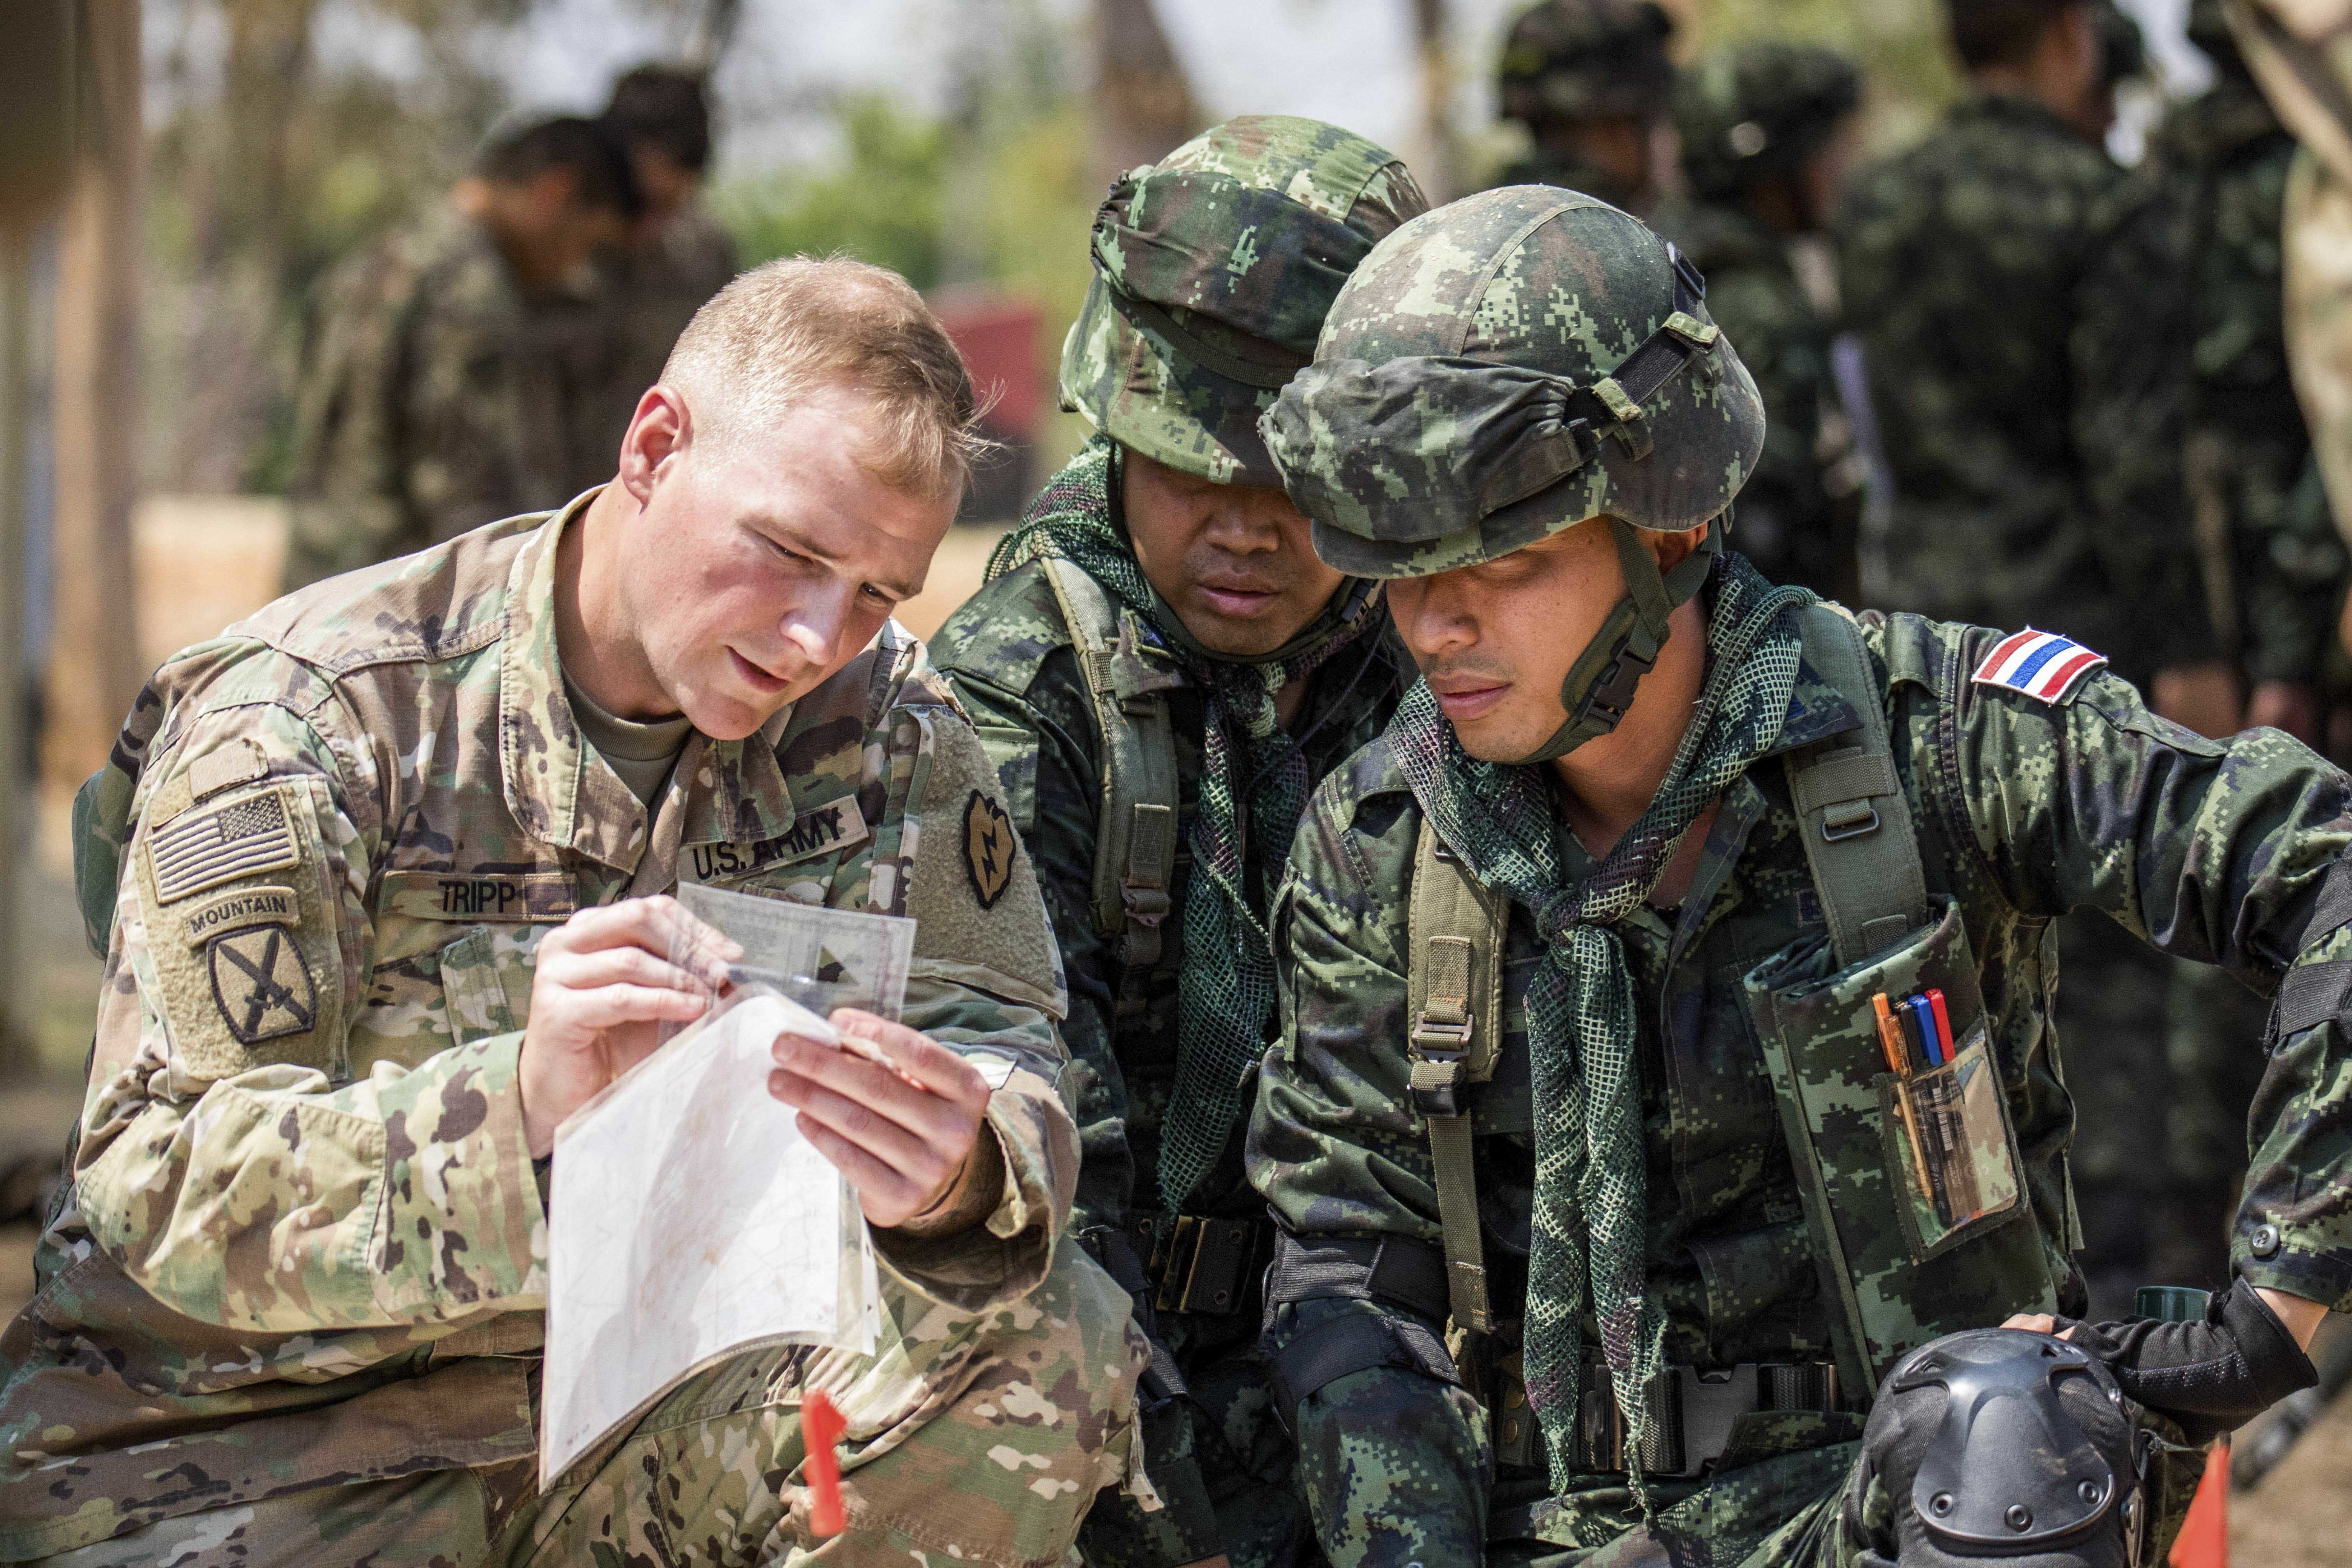 A U.S. soldier participates in a class on indirect fire with Thai counterparts in Nakhon Ratchasima, Thailand, Feb. 26, 2020, during Hanuman Guardian 20, an exercise to demonstrate commitment to the U.S.-Thailand alliance.